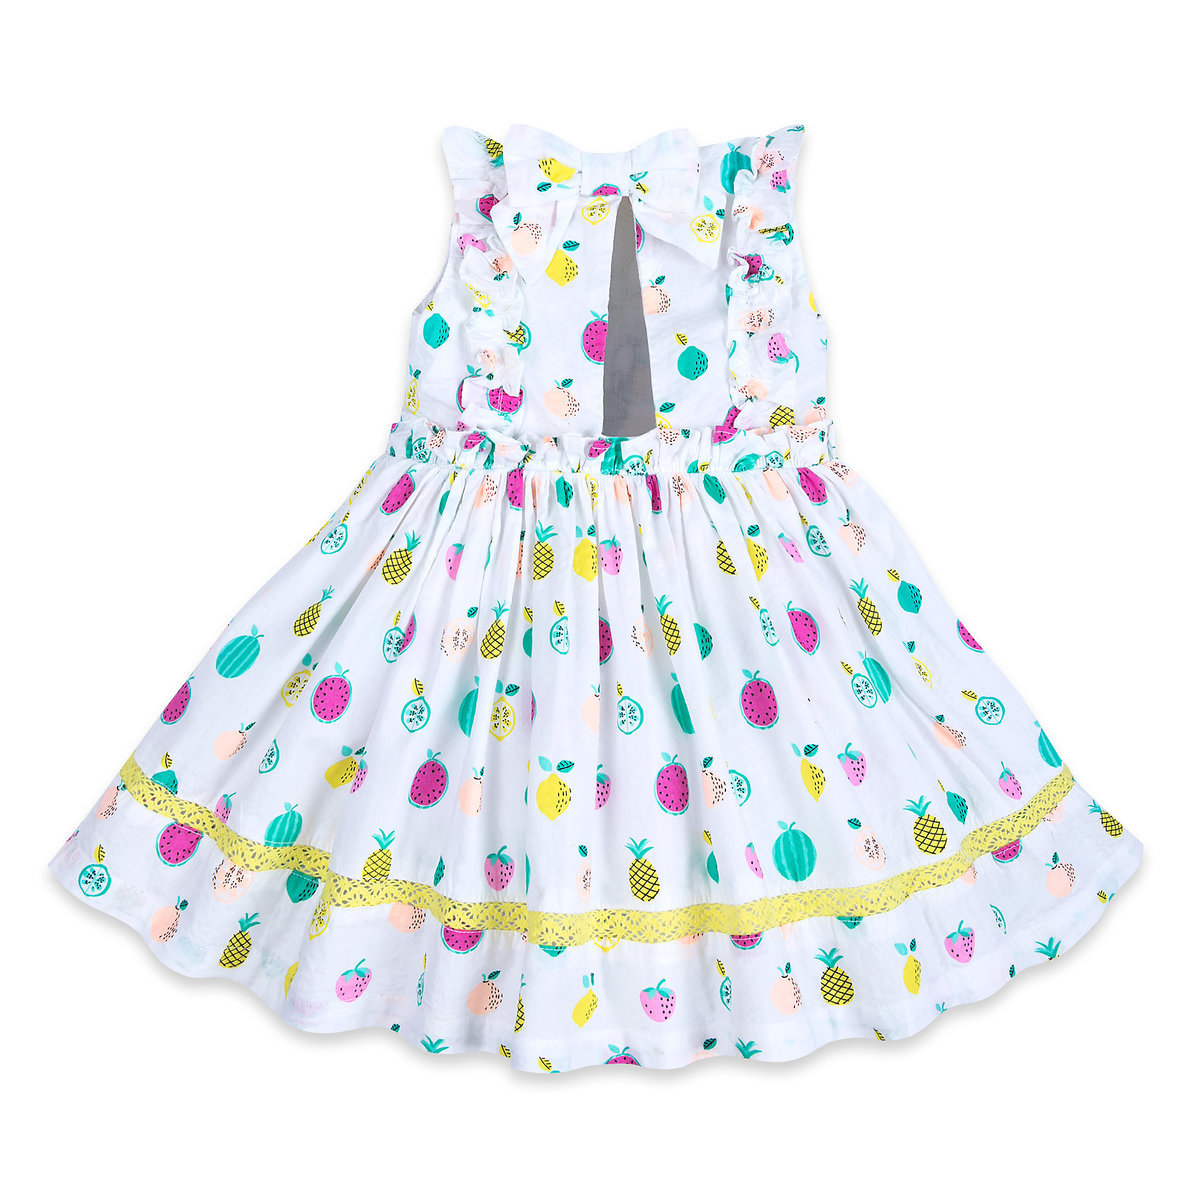 8cccd5bdd Product Image of Minnie Mouse Fruit Print Dress Set for Baby # 3